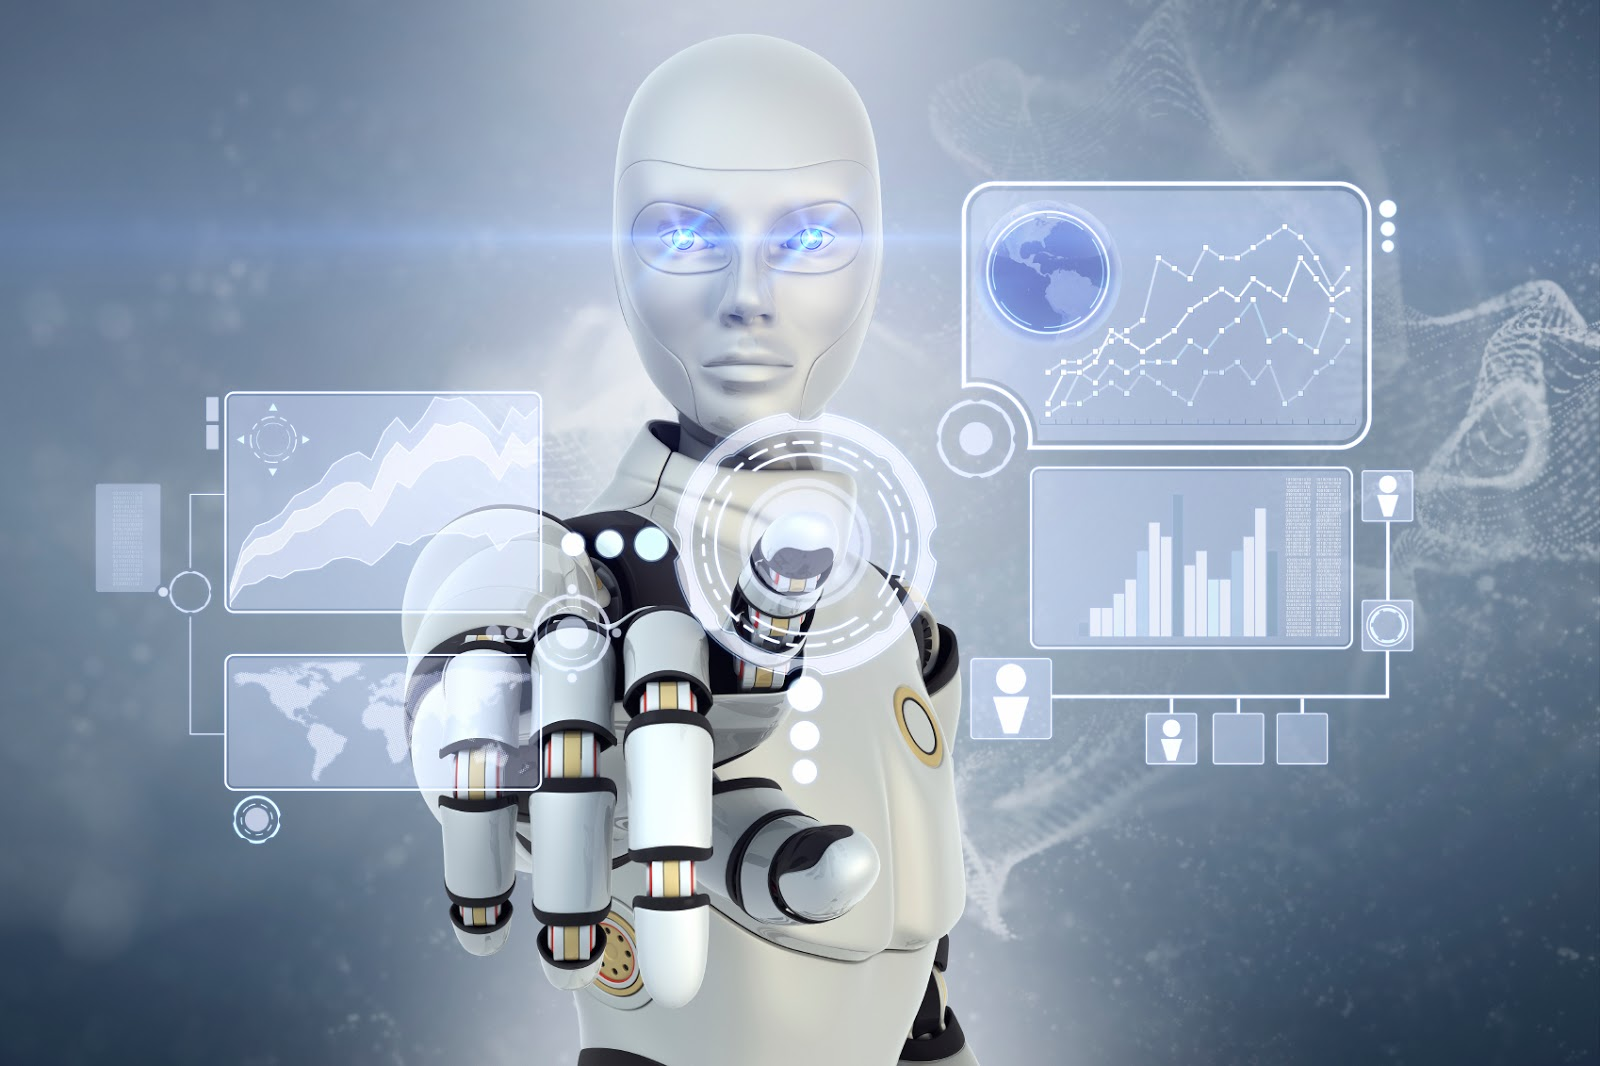 6 Improved technology predictions for 2020